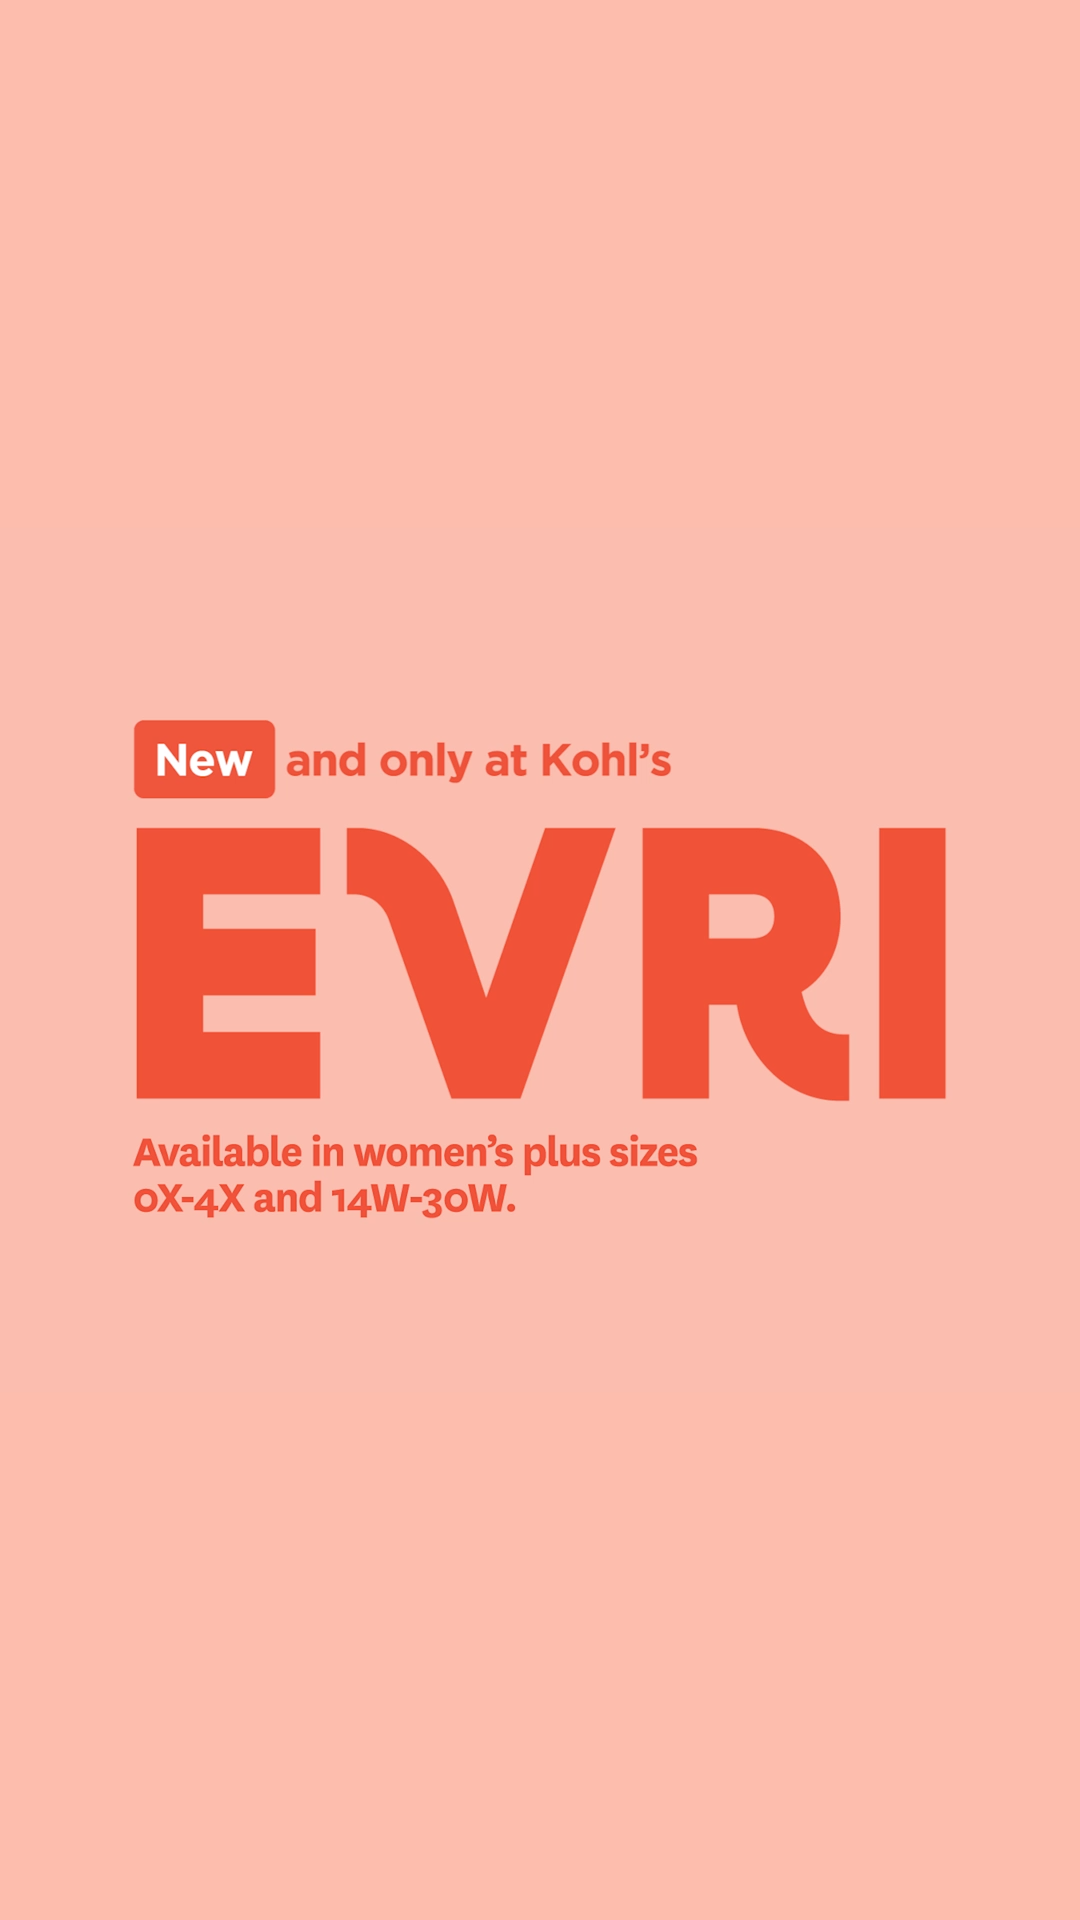 Introducing Evri Our New Women S Plus Collection Available Only At Kohl S In Women S Plus Sizes 0x 4x A Video Plus Clothing Farmers Market Outfit Movie Night Outfits